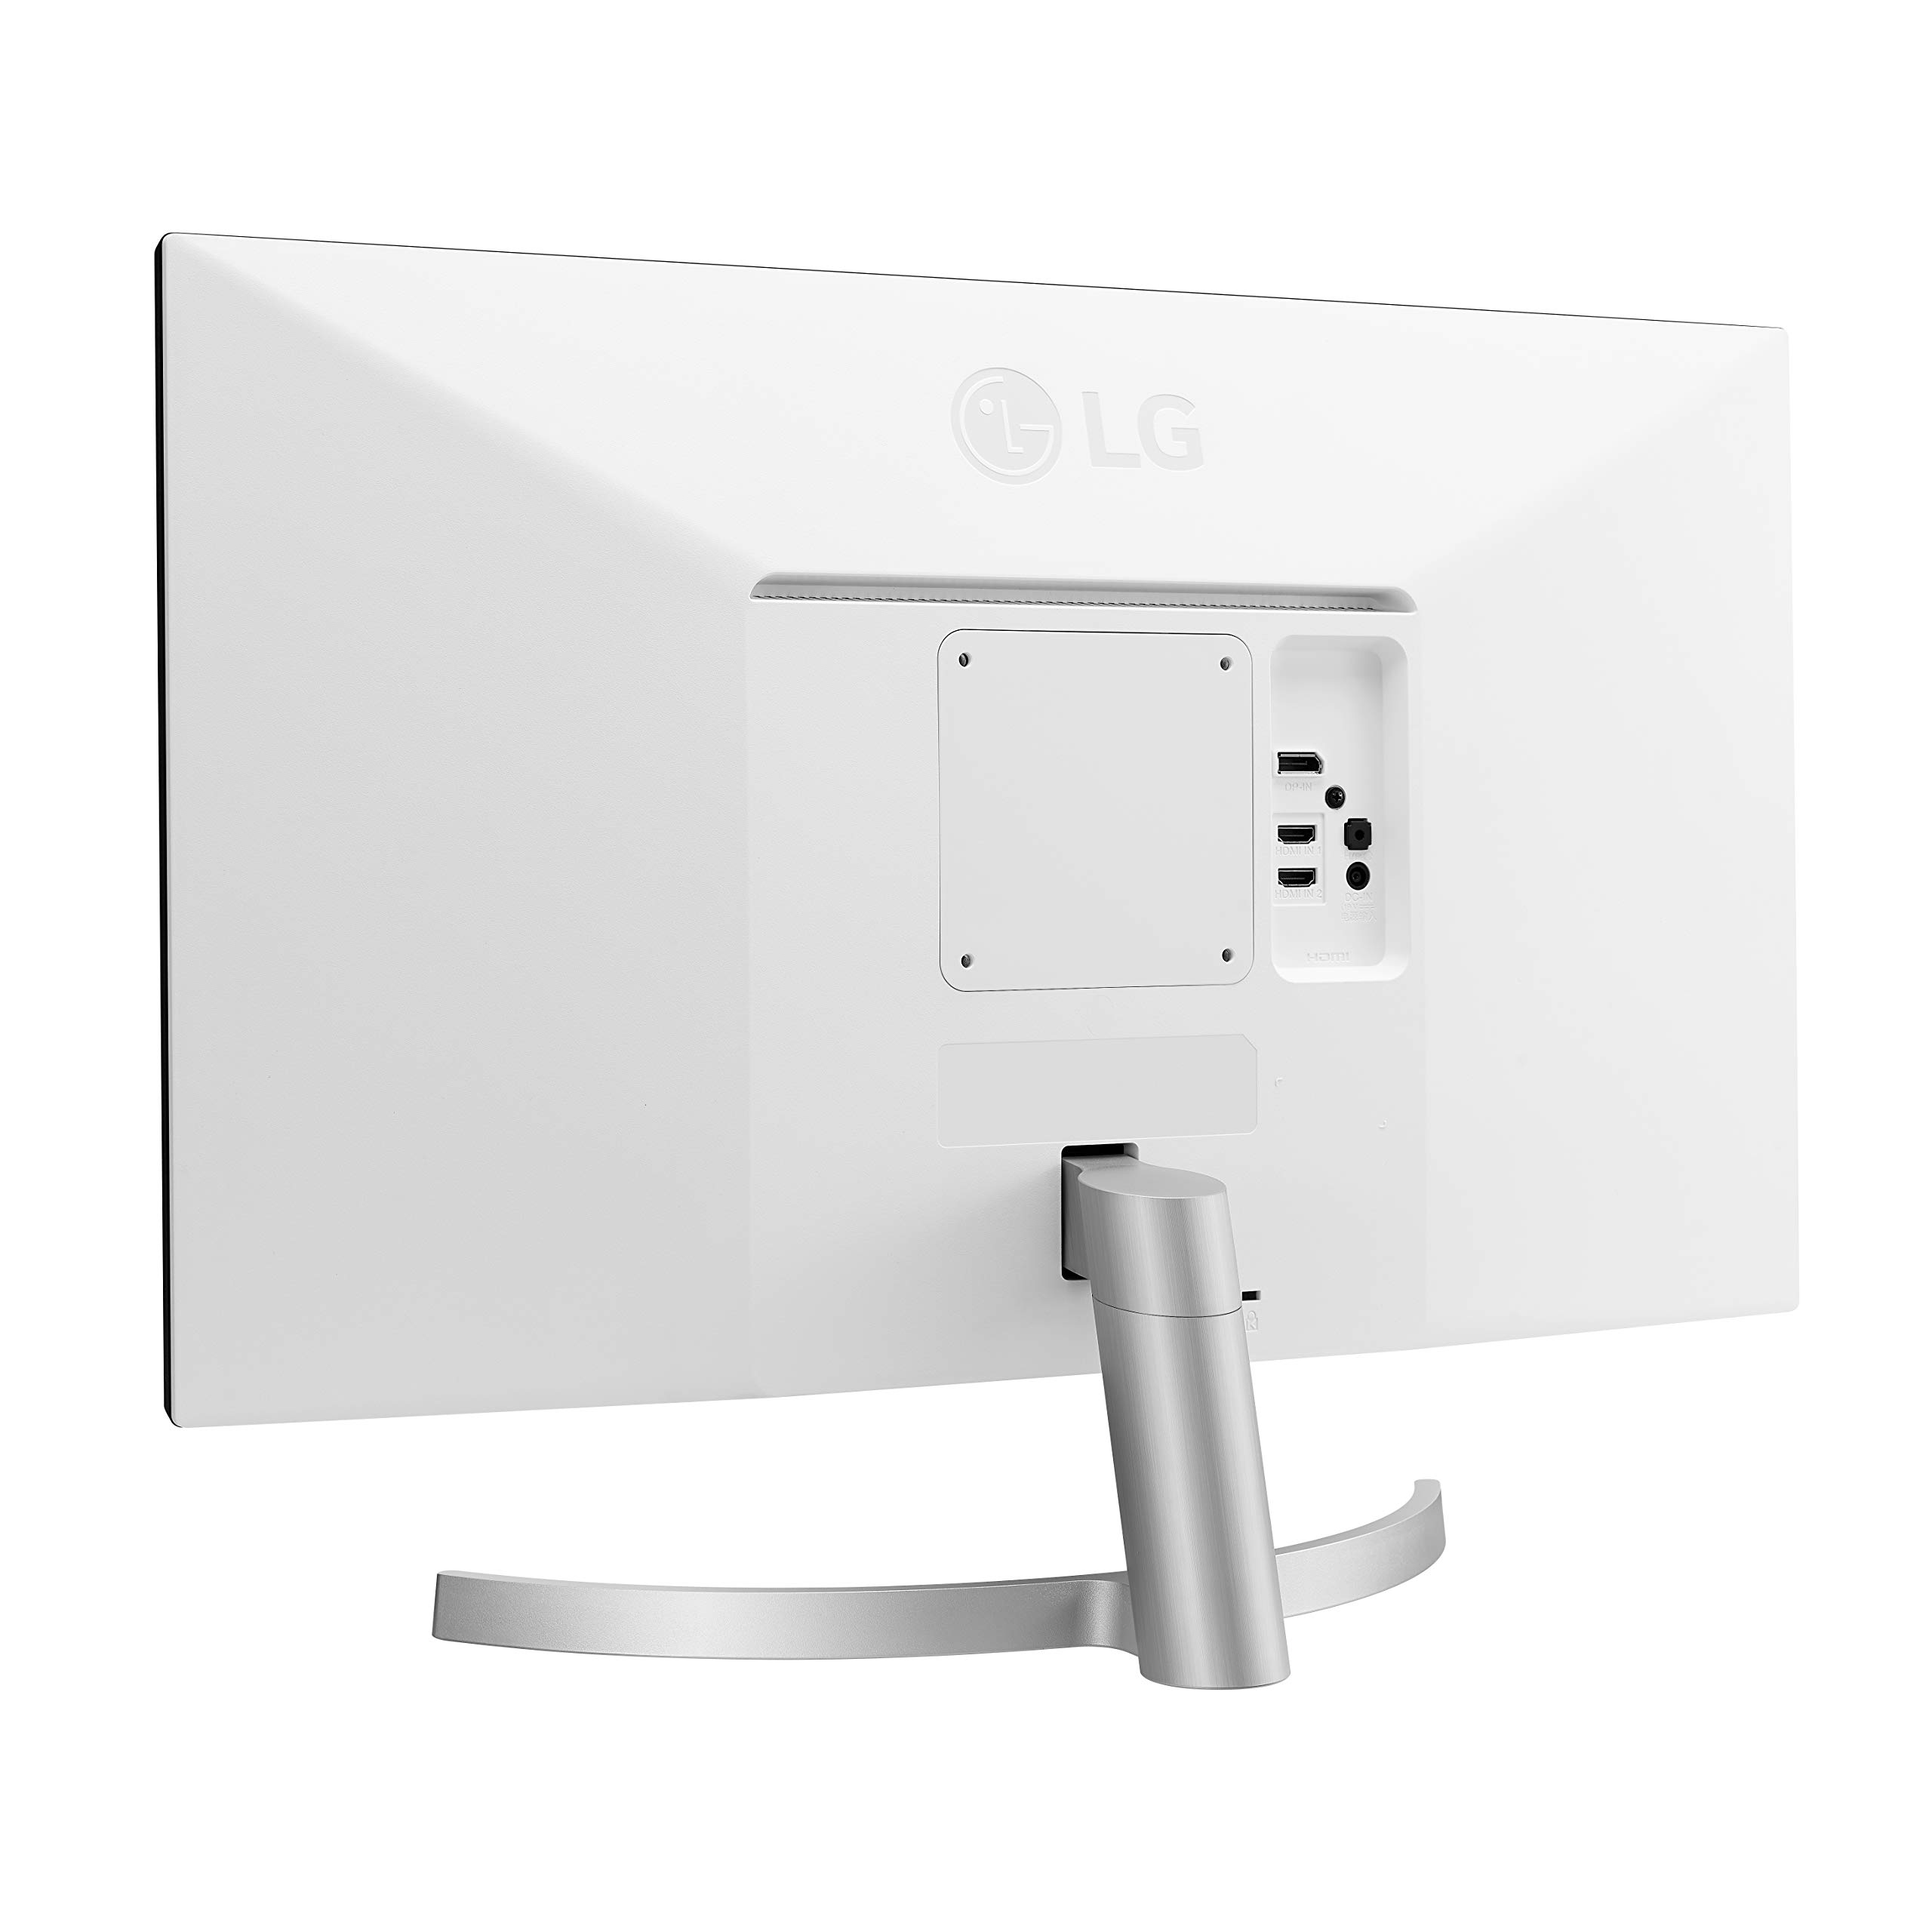 LG 27UL500-W 27-Inch UHD (3840 x 2160) IPS Monitor with Radeon Freesync Technology and HDR10, White by LG (Image #8)